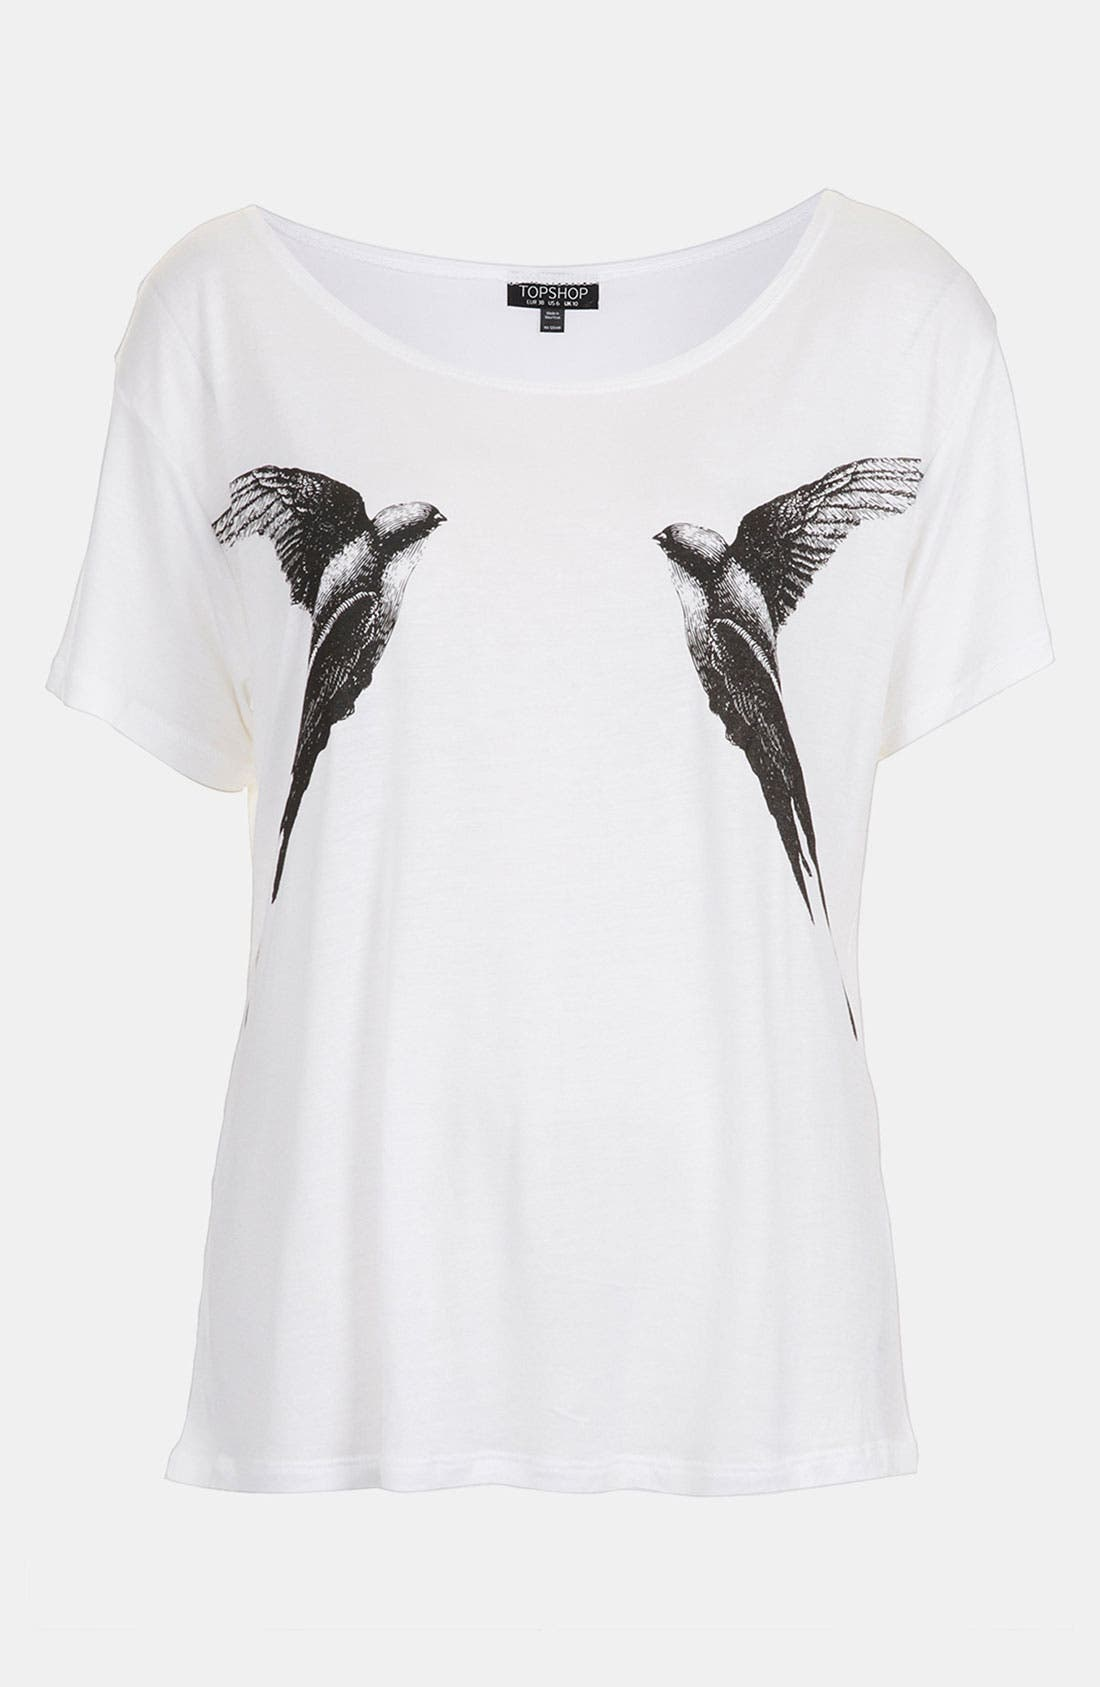 Main Image - Topshop 'Mirror Bird' Graphic Tee